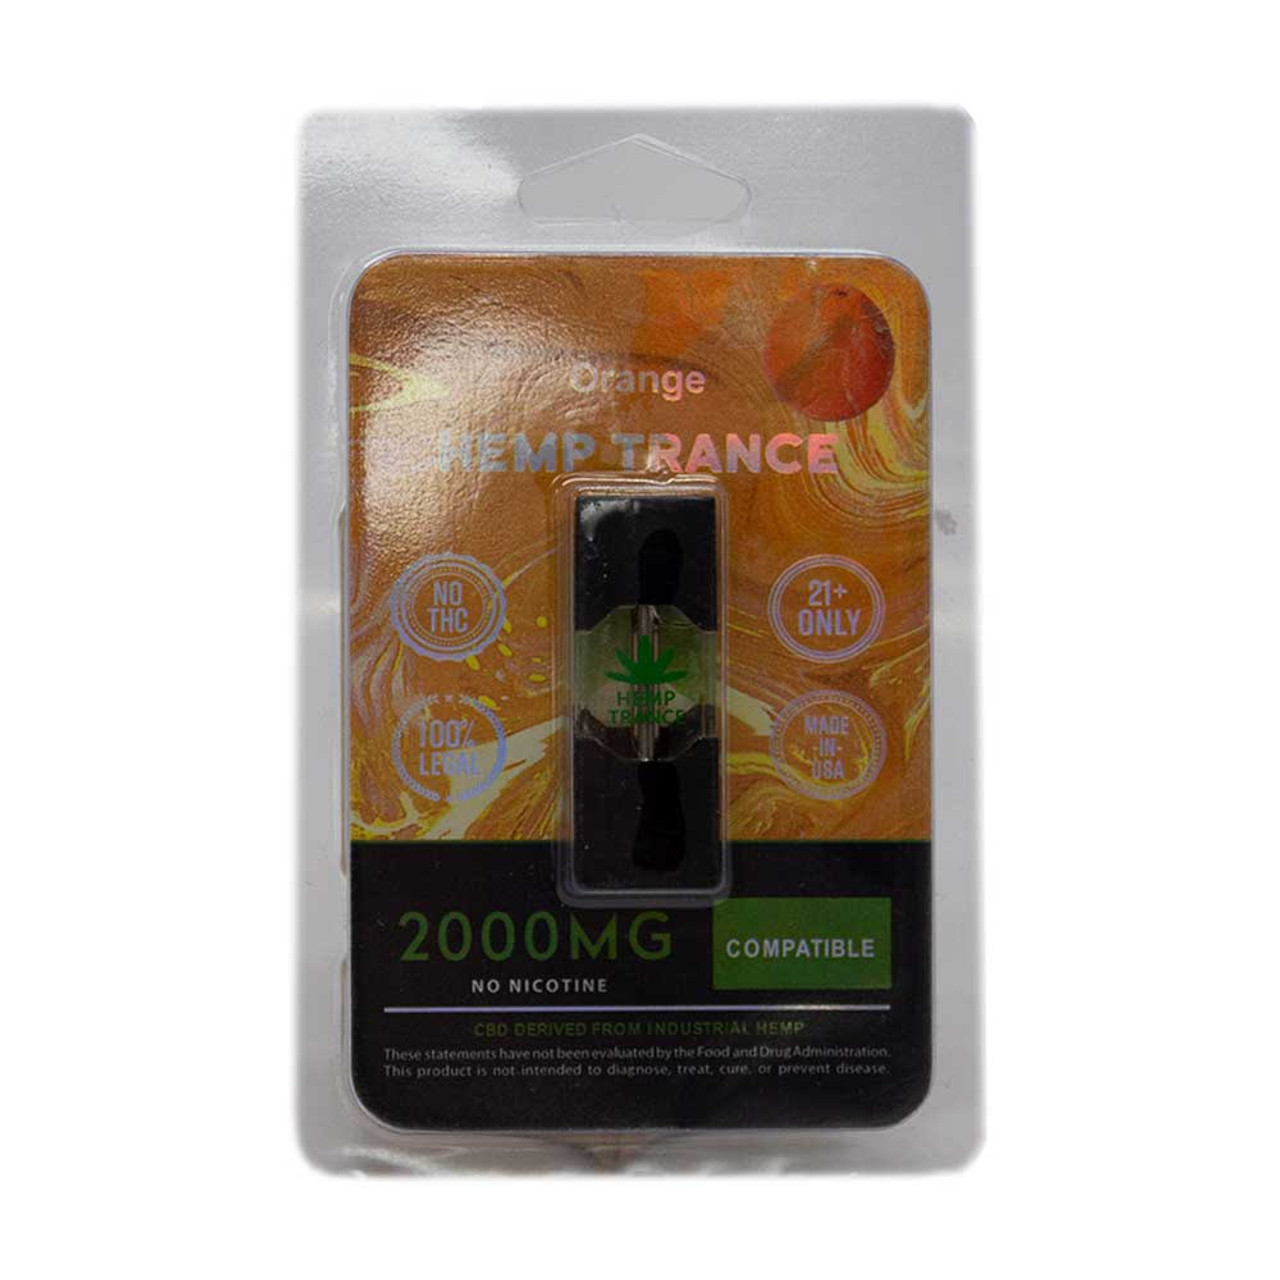 HEMPTRANCE CBD PODS 2000MG 1PK - ORANGE